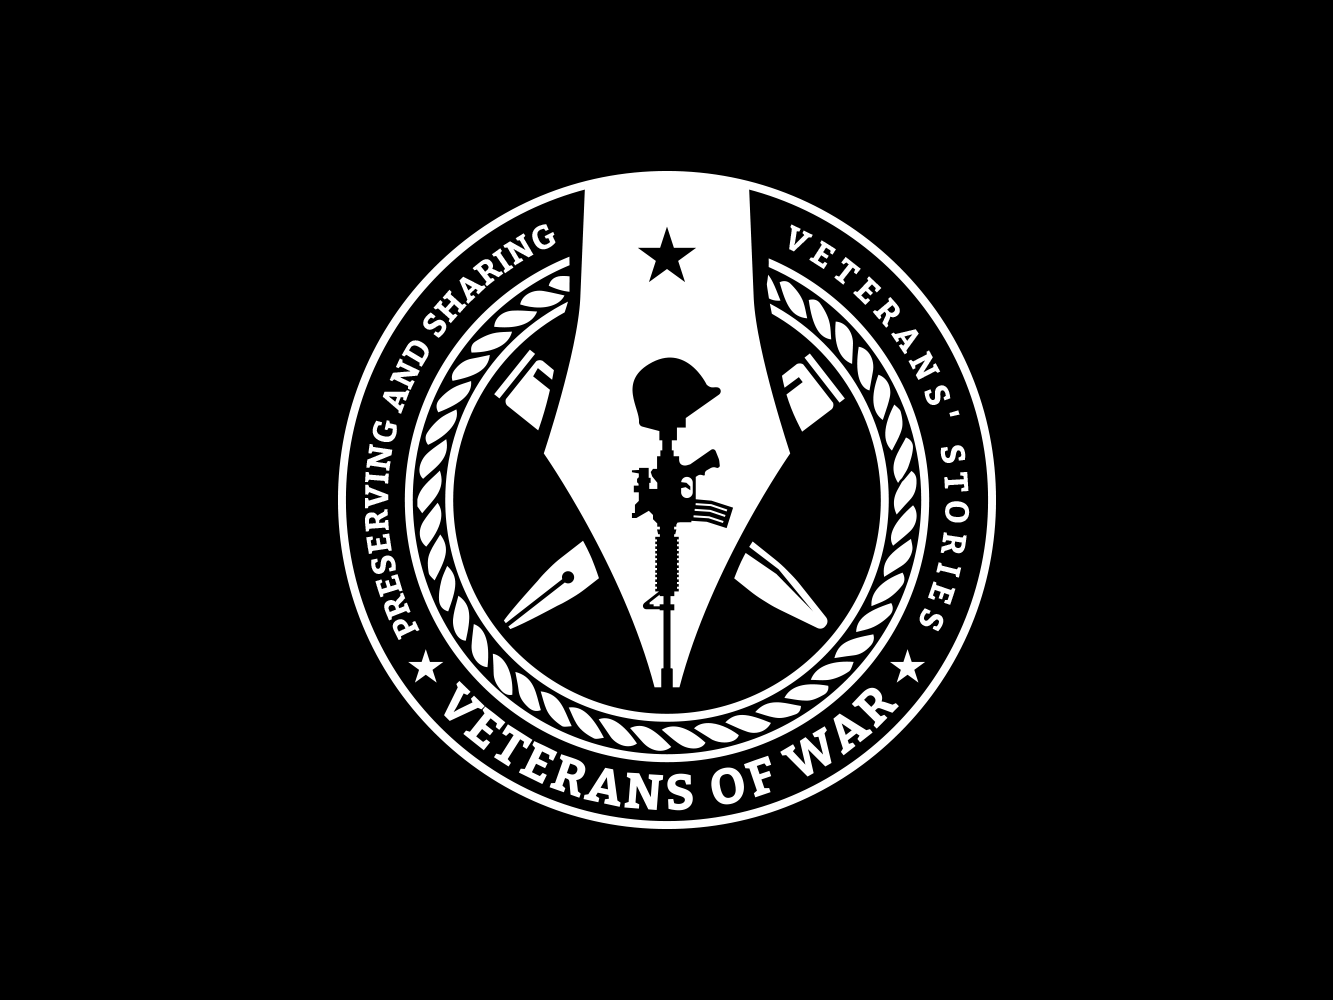 Create the logo for Veterans of War - a nonprofit dedicated to sharing veterans' stories